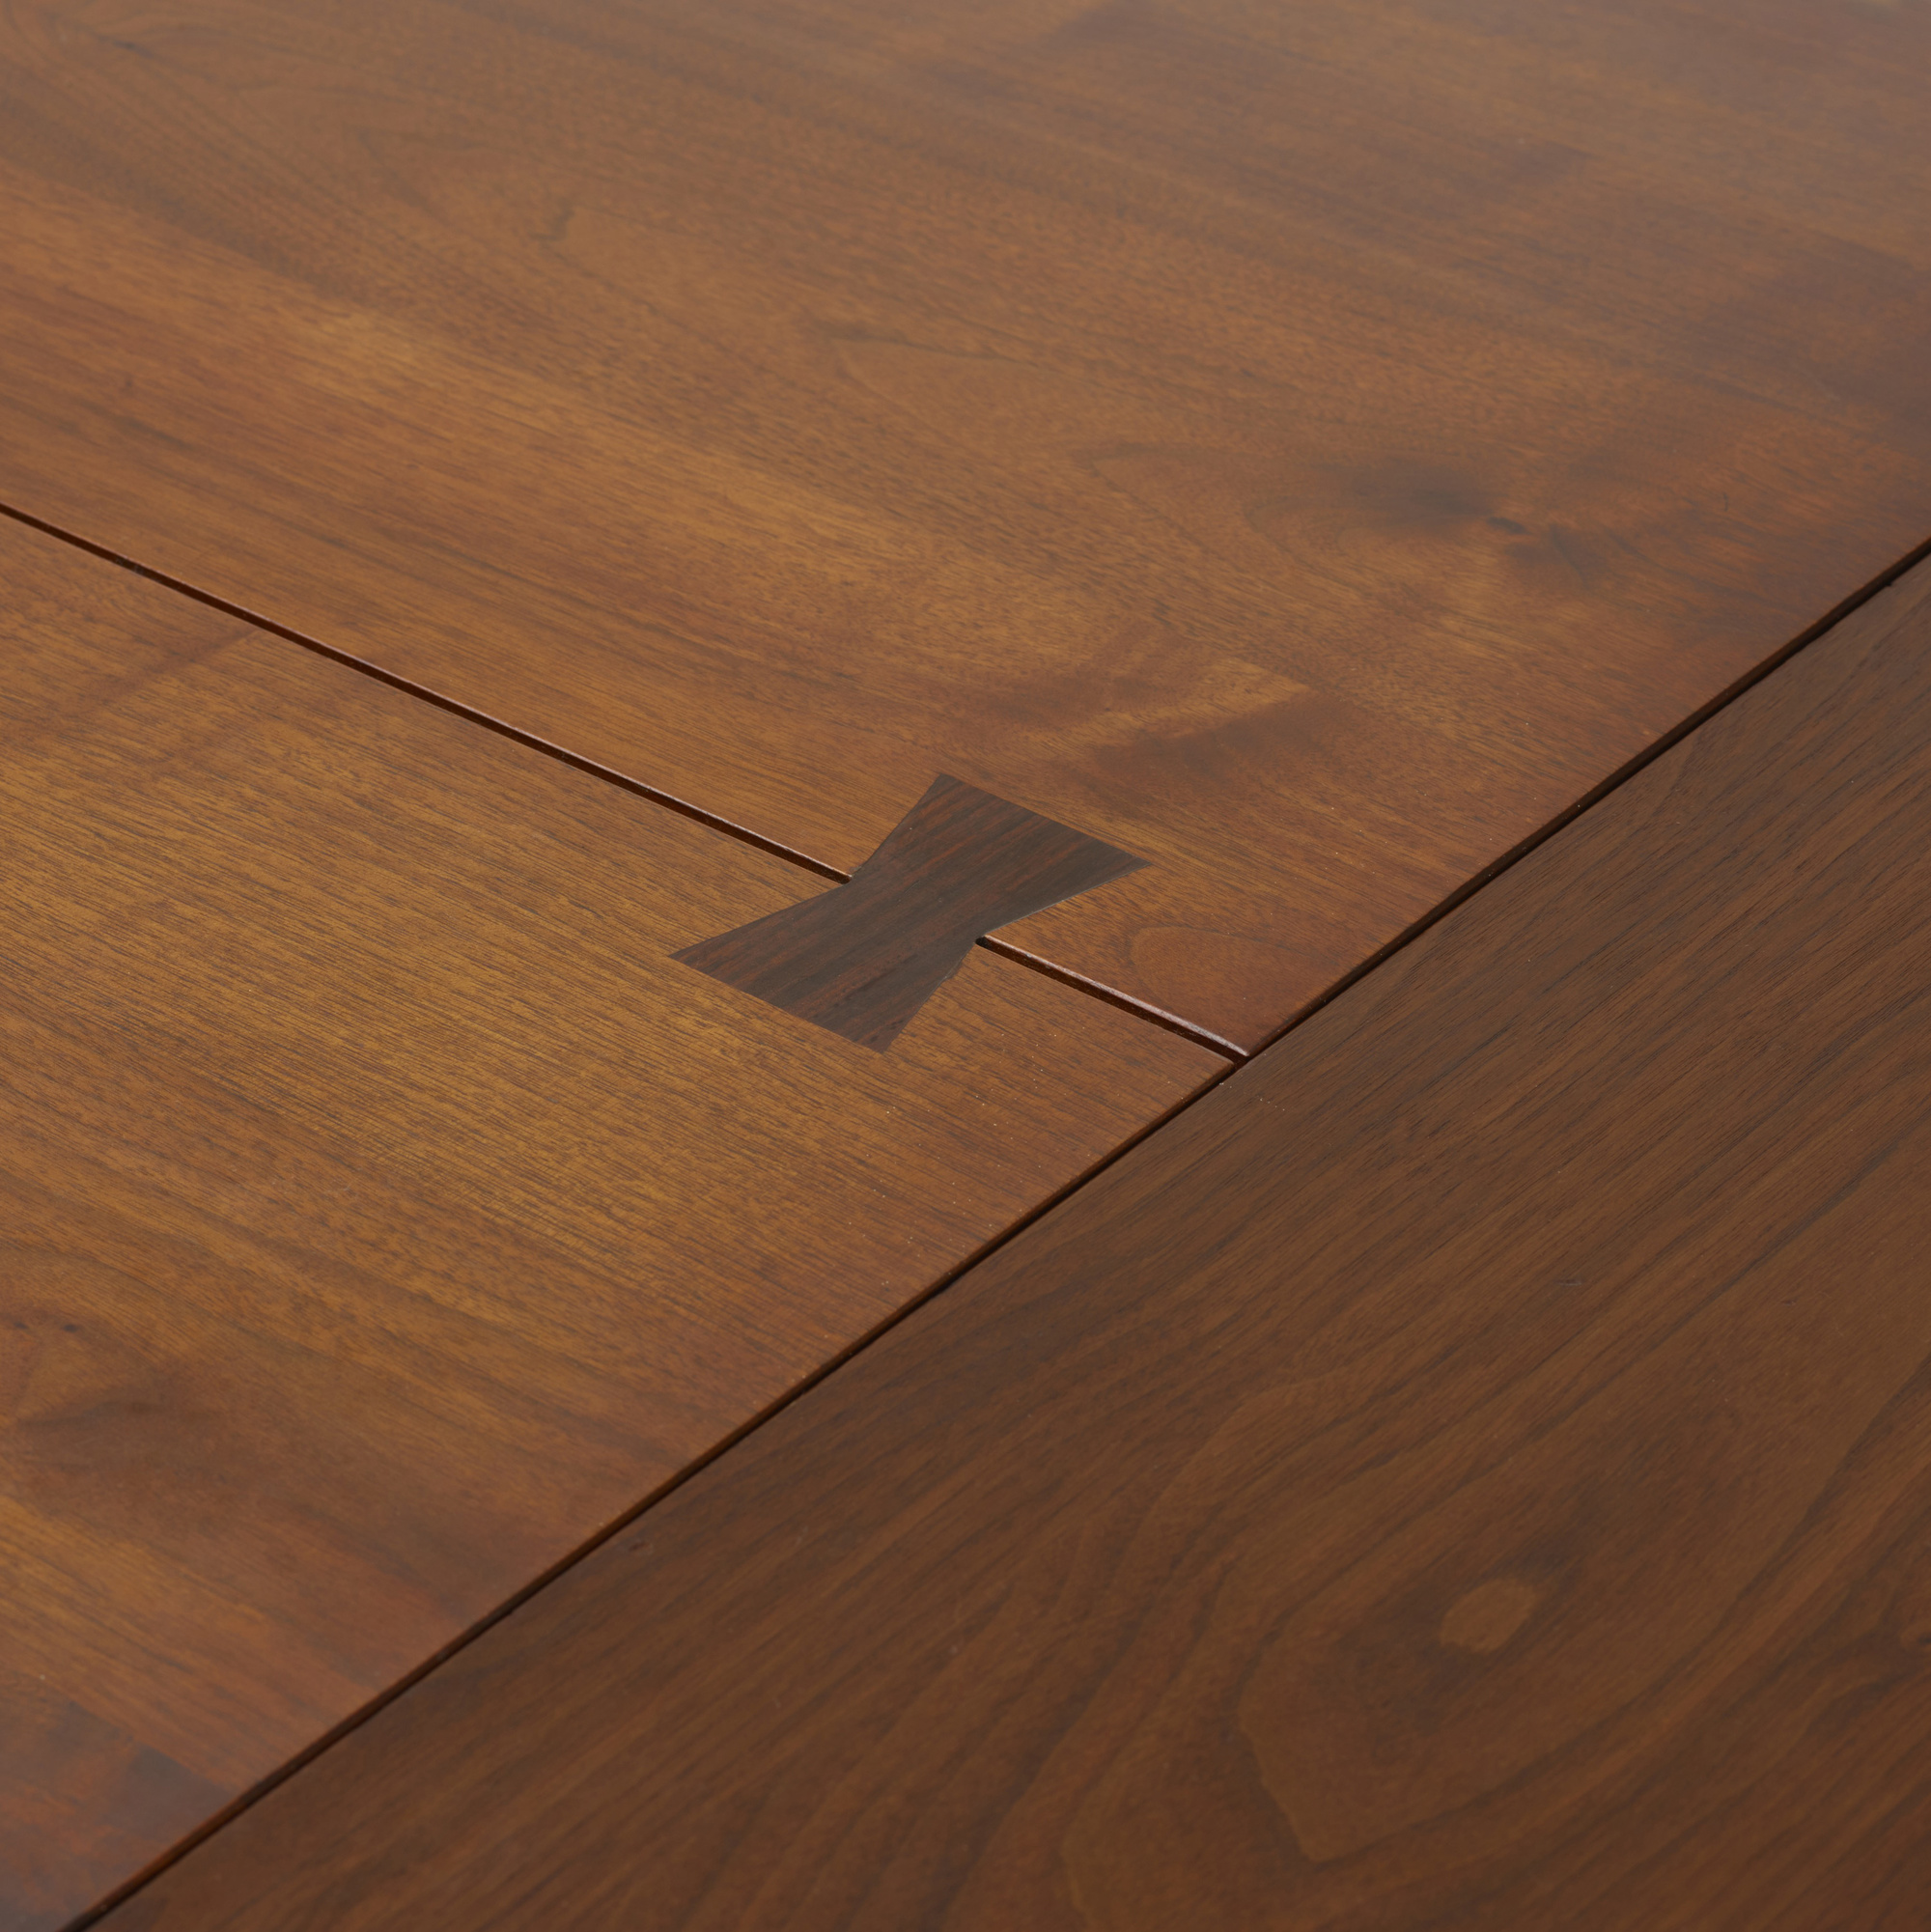 133: George Nakashima / Turned leg dining table (3 of 3)